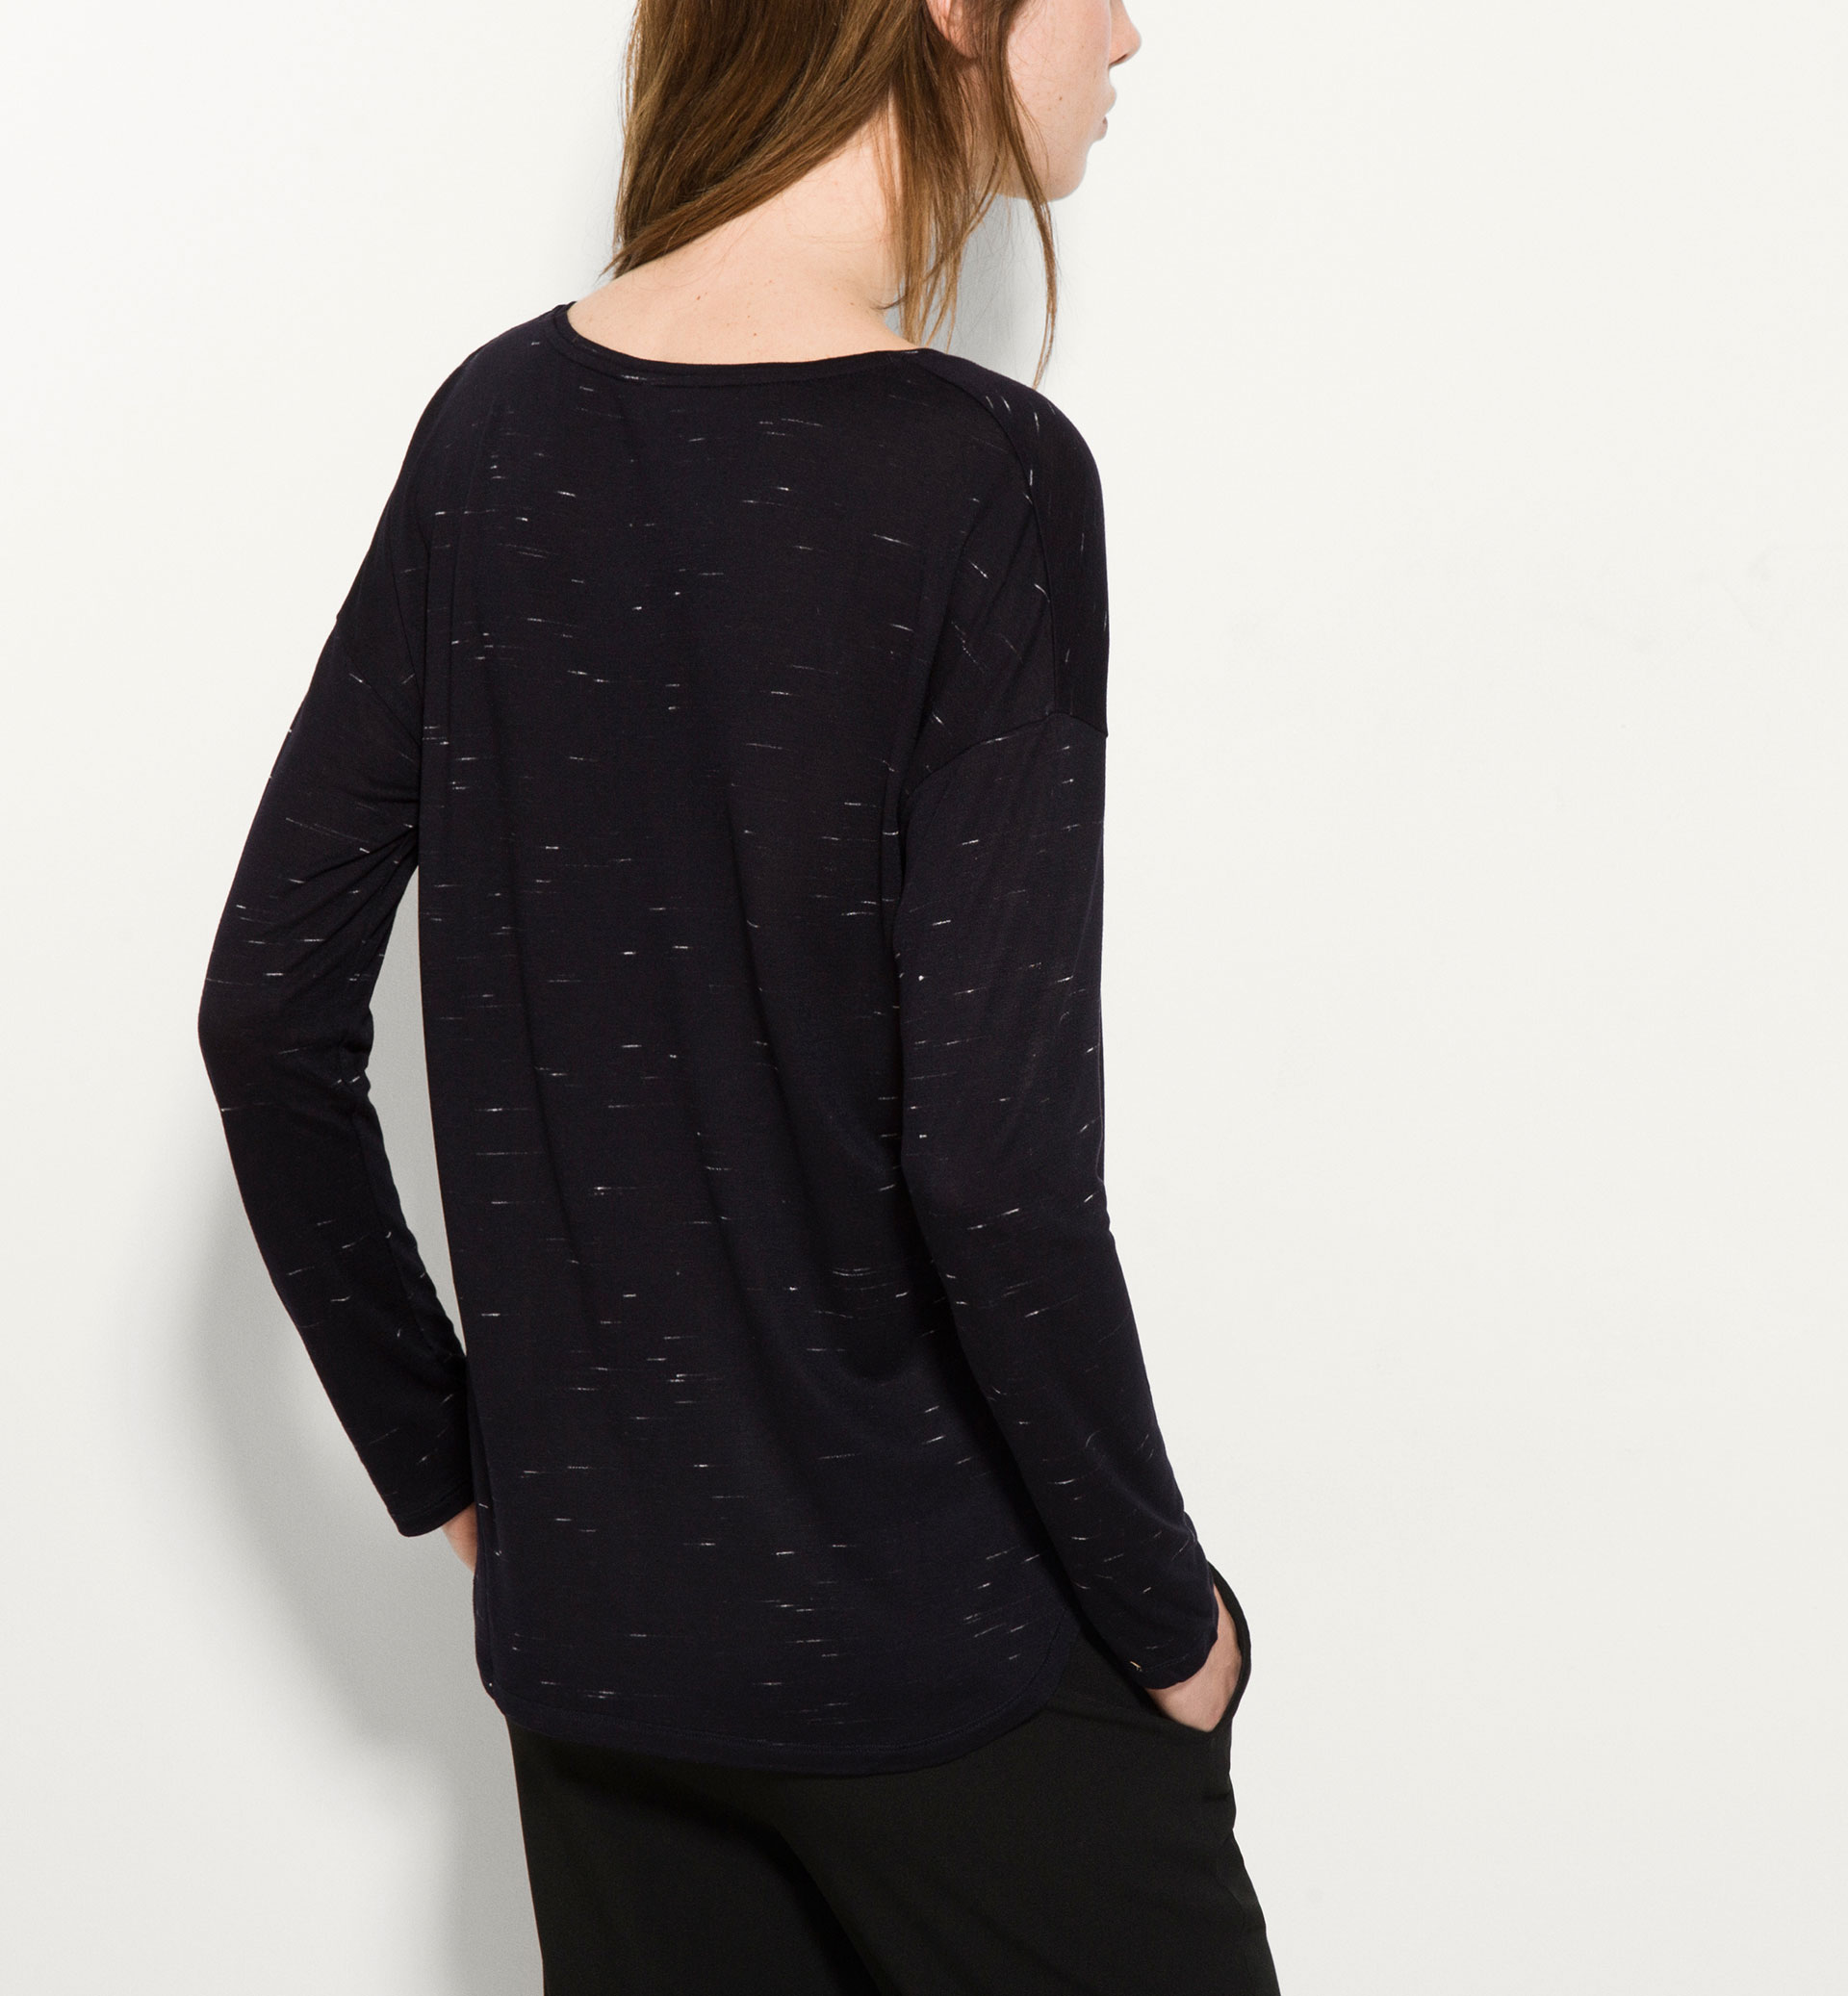 LONG SLEEVE FLECKED TOP